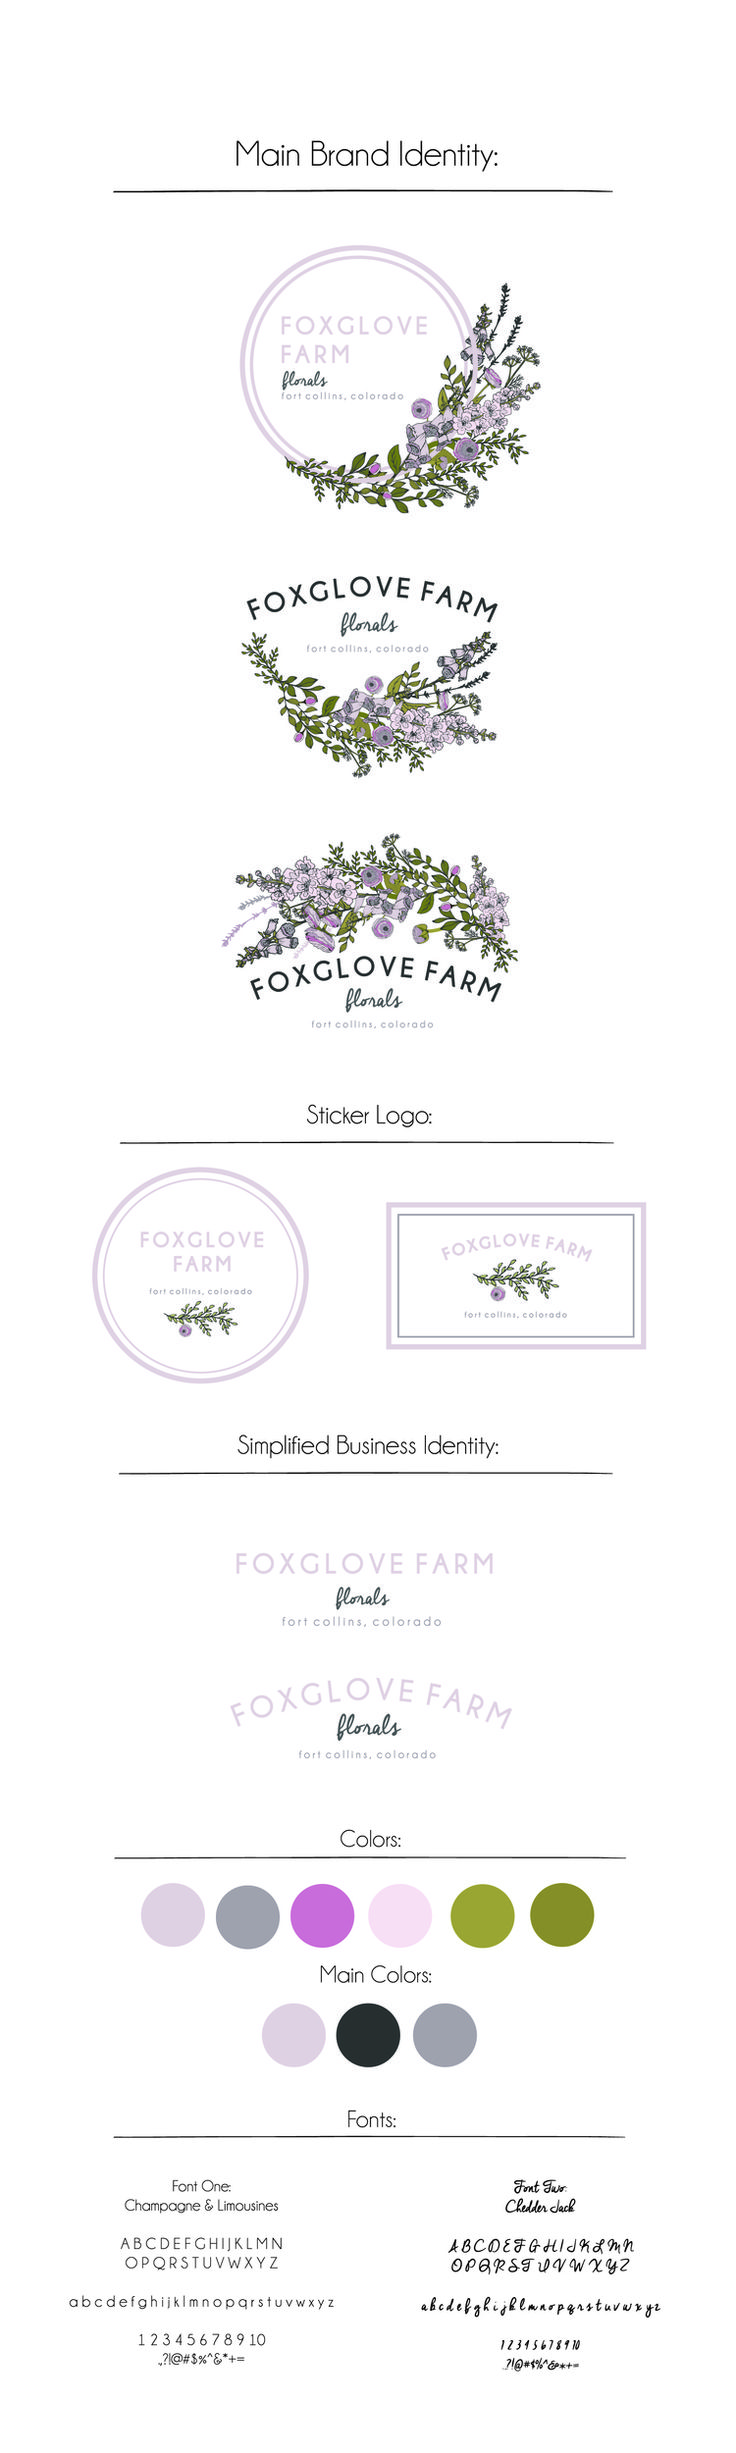 Hand Drawn dusty pink Florist wreath logo Design — Maija Rebecca Hand Drawn